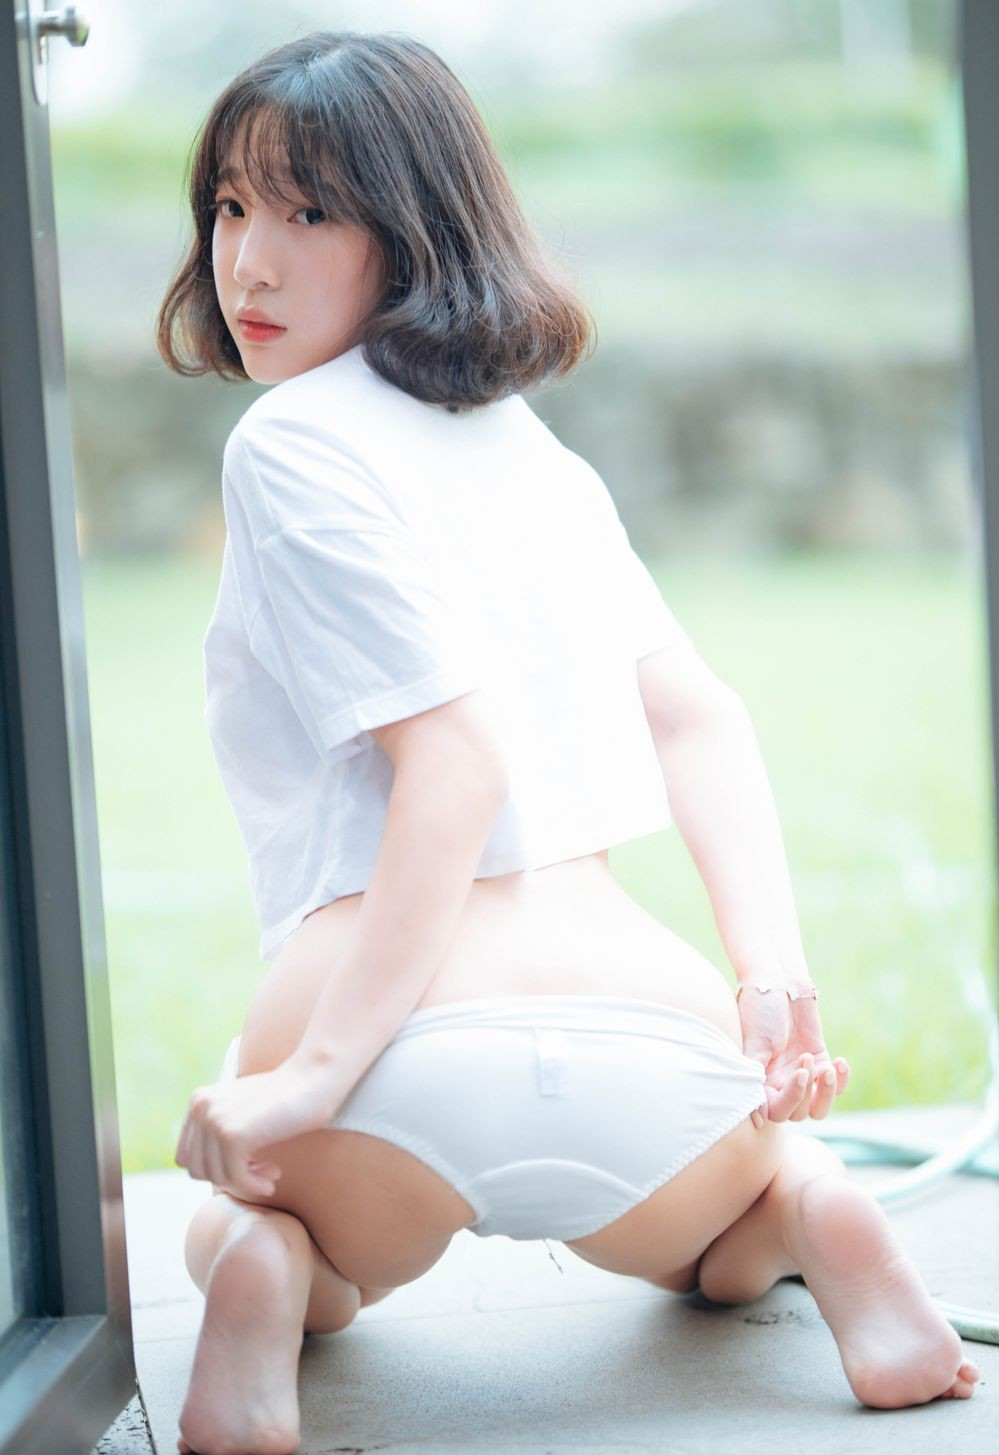 Kang In Kyung, a Pure South-Korean Model with Extremely Hot Body!